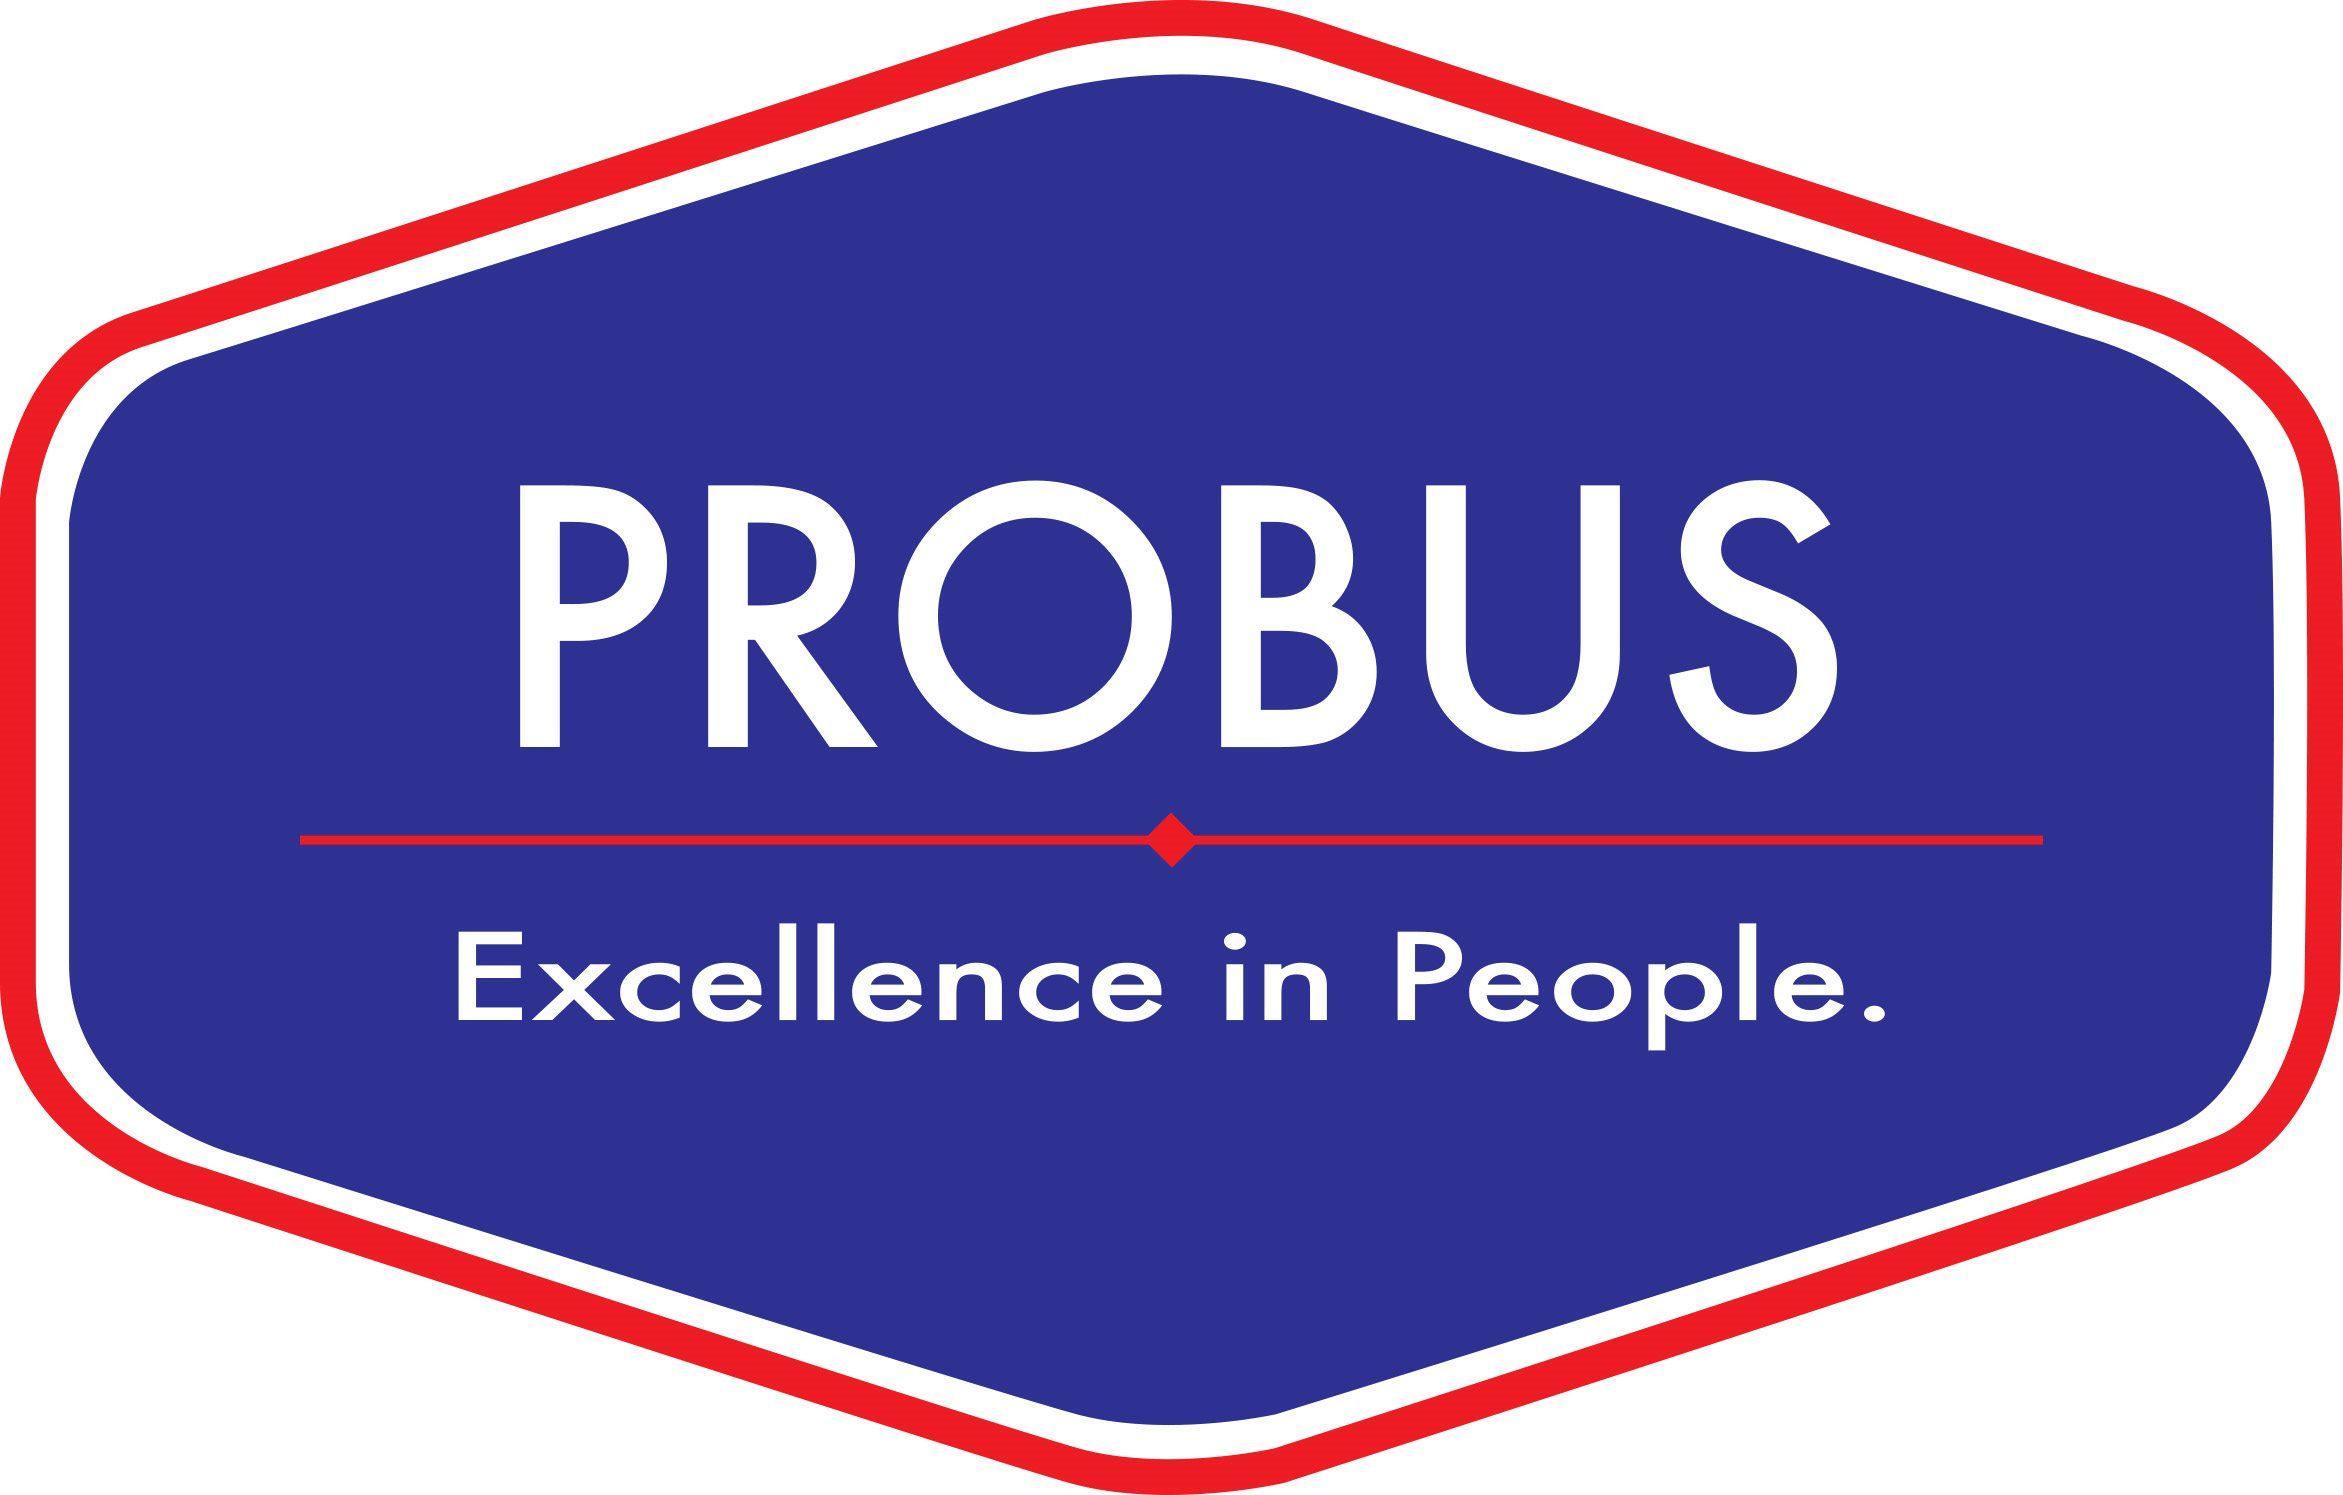 PROBUS BUSINESS CONSULTING